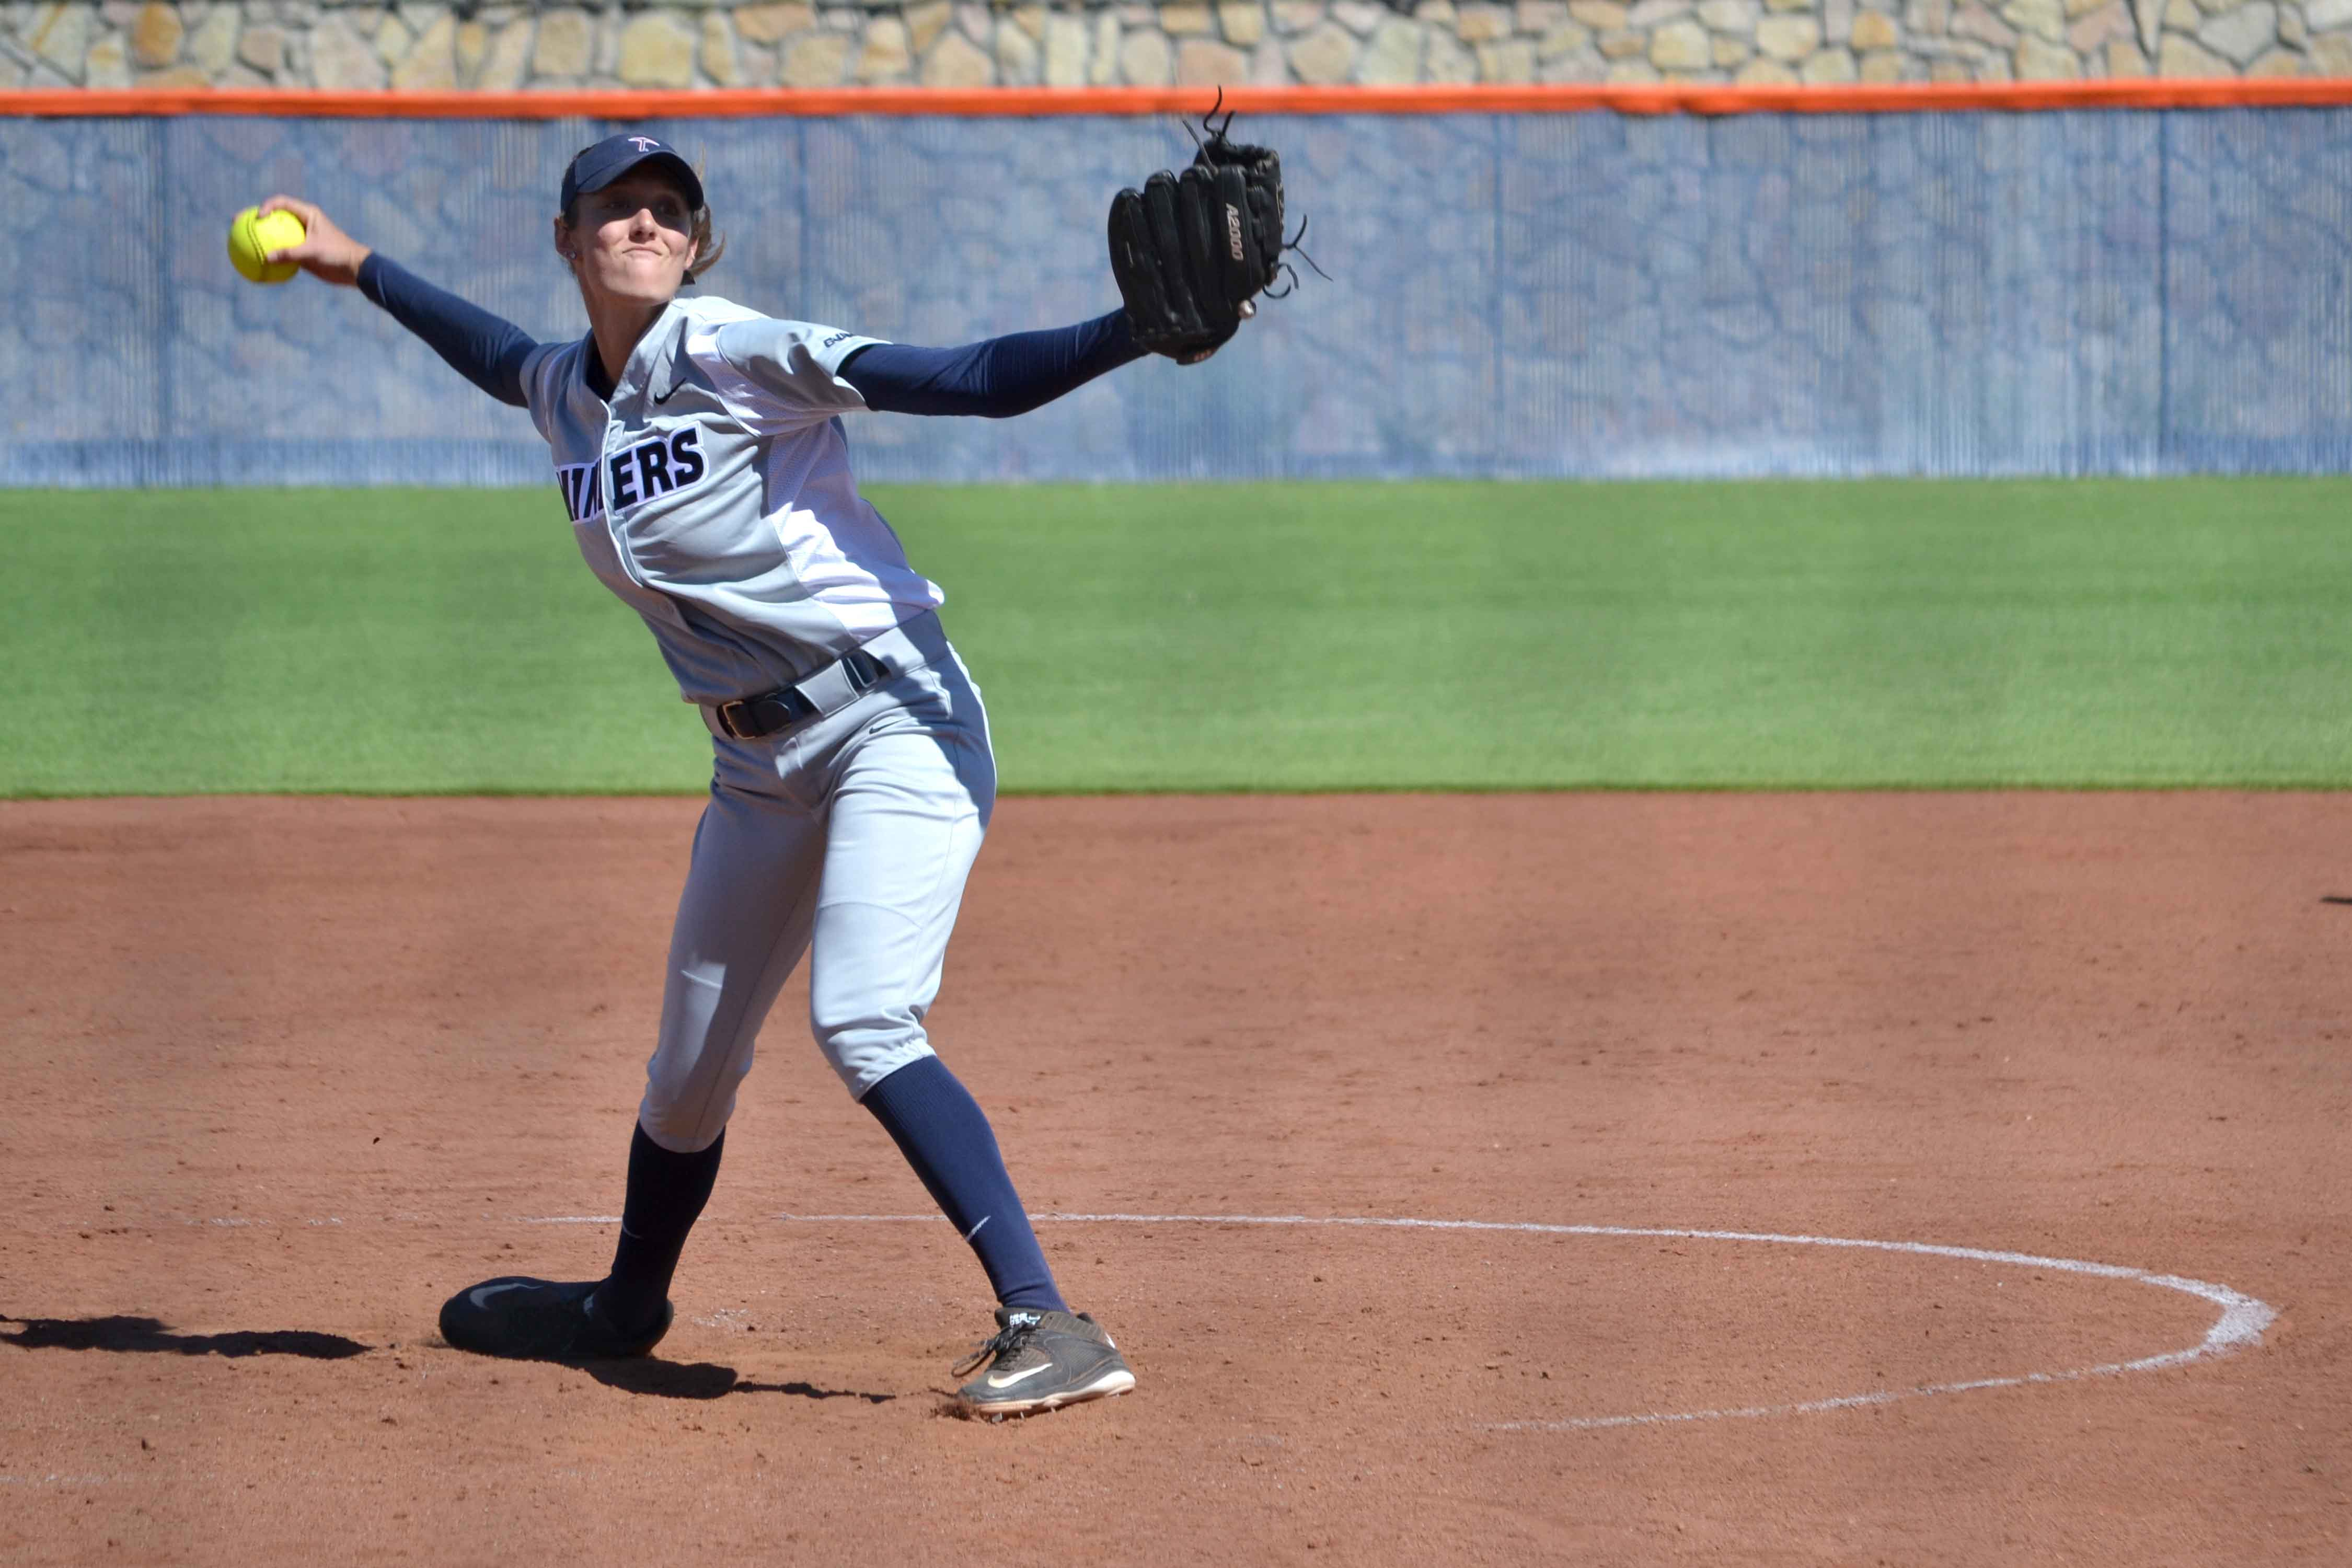 The Miners' softball team is 5-3 over its last eight games and 3-3 in Conference USA.